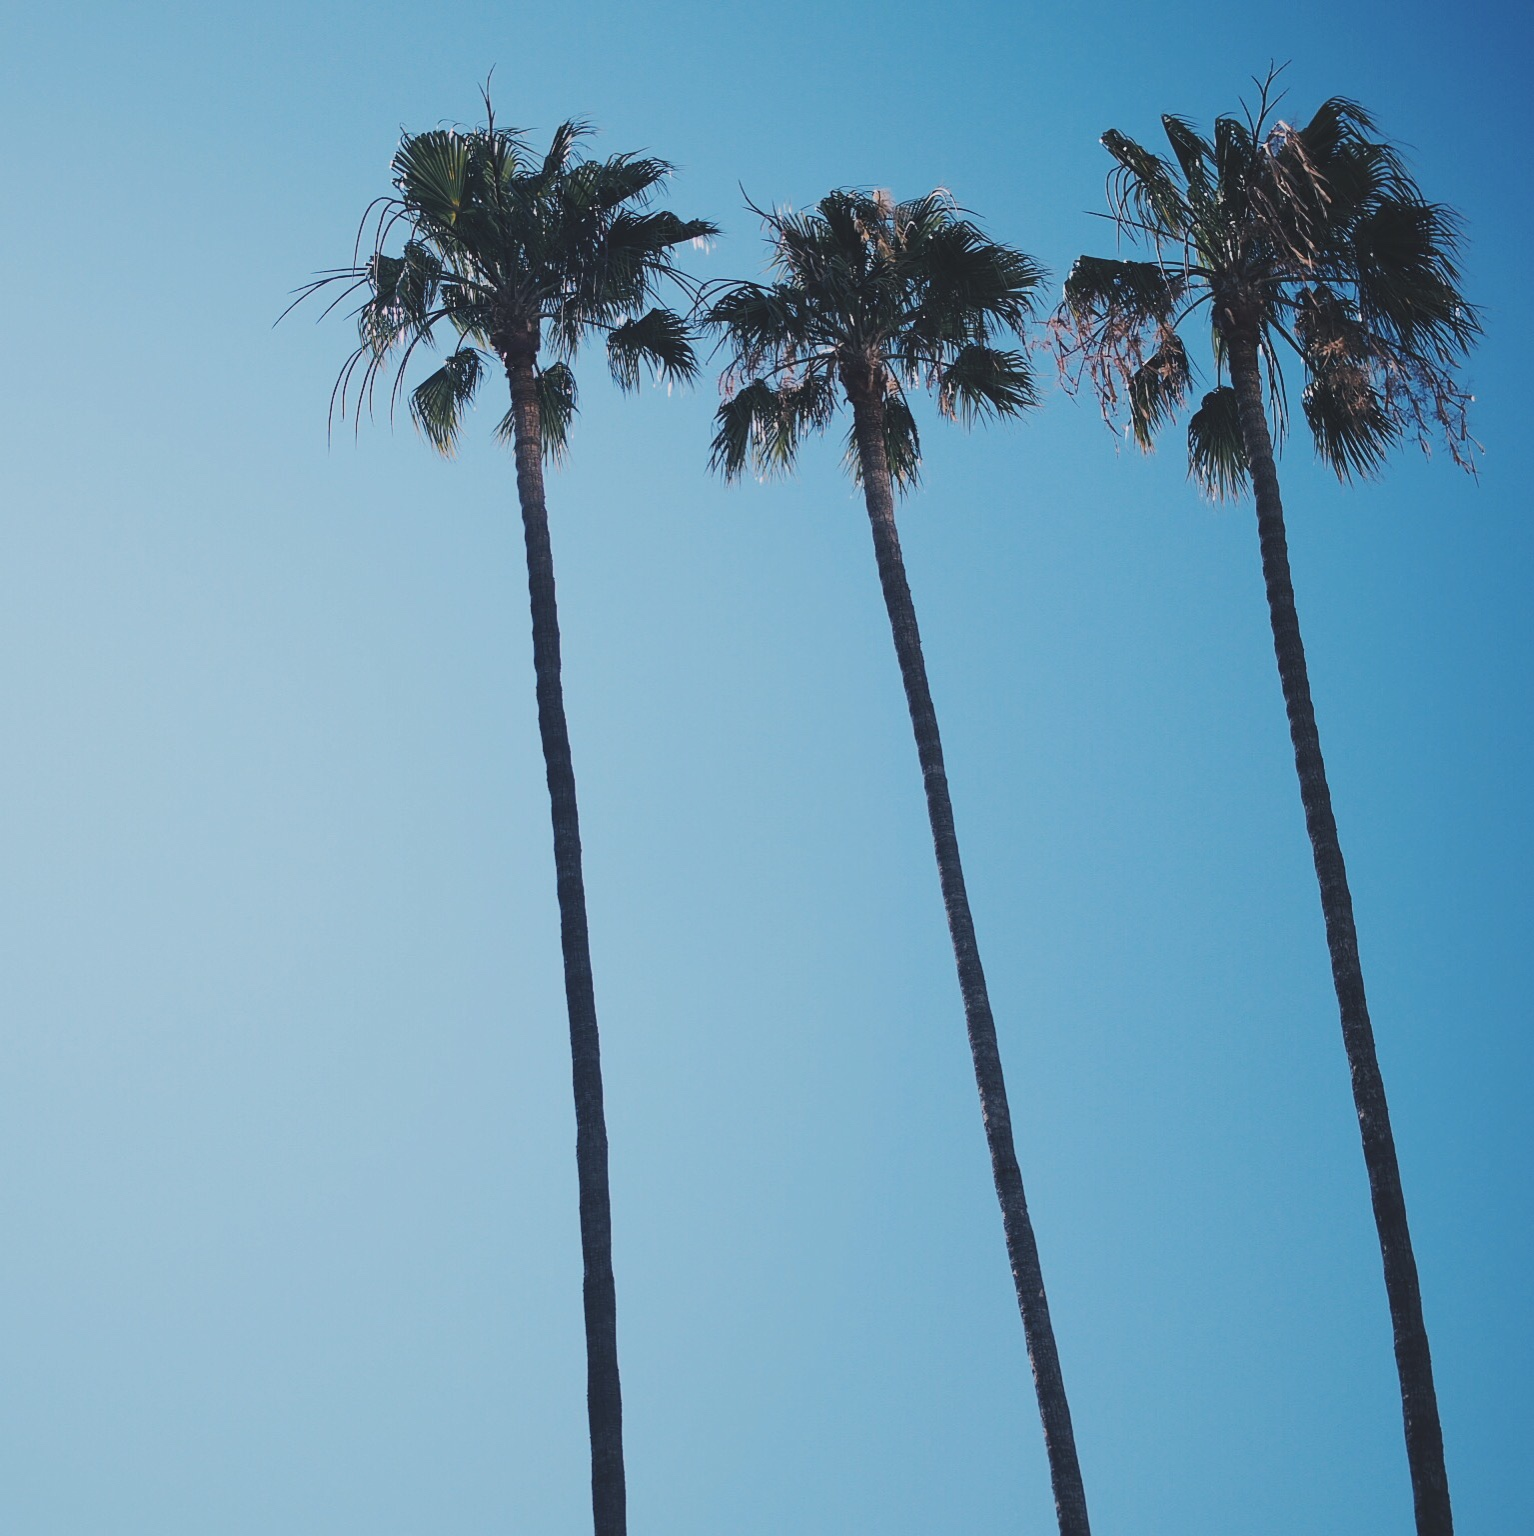 palm-trees-beverly-hills-california